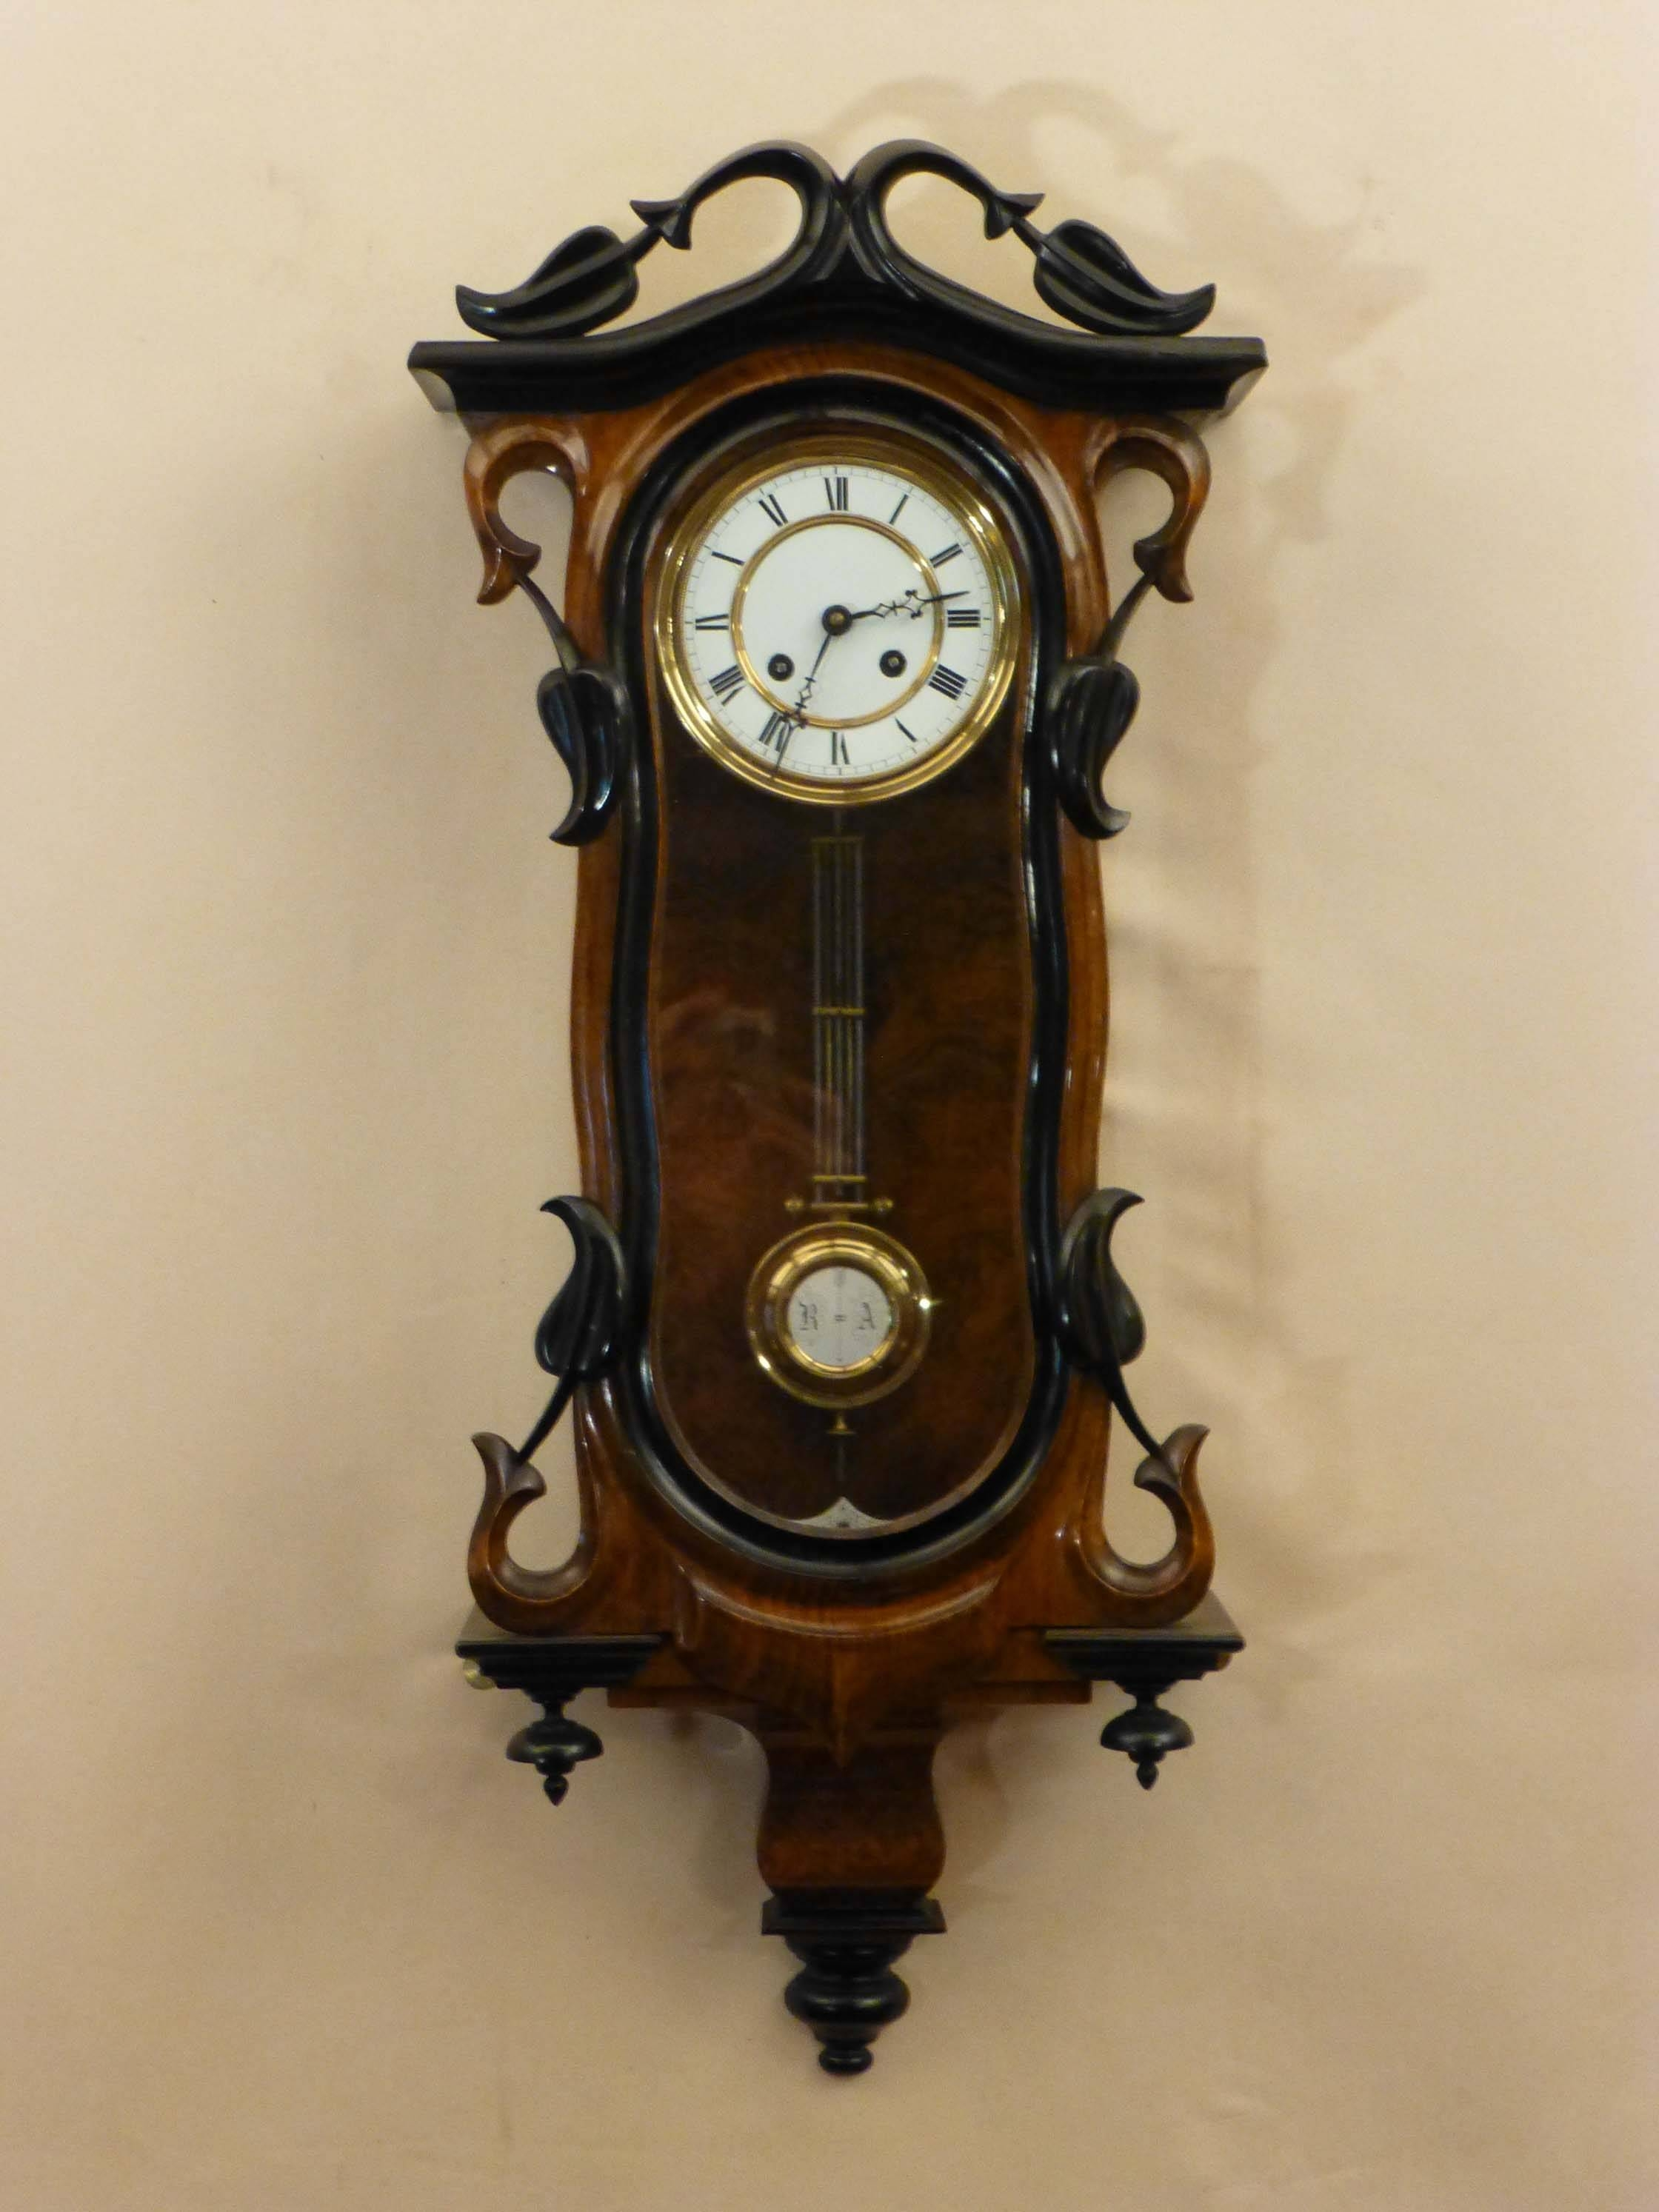 Antique Walnut Vienna Regulator|Art Nouveau Regulator|Essex Intended For Most Popular Art Deco Wall Clocks (View 2 of 25)